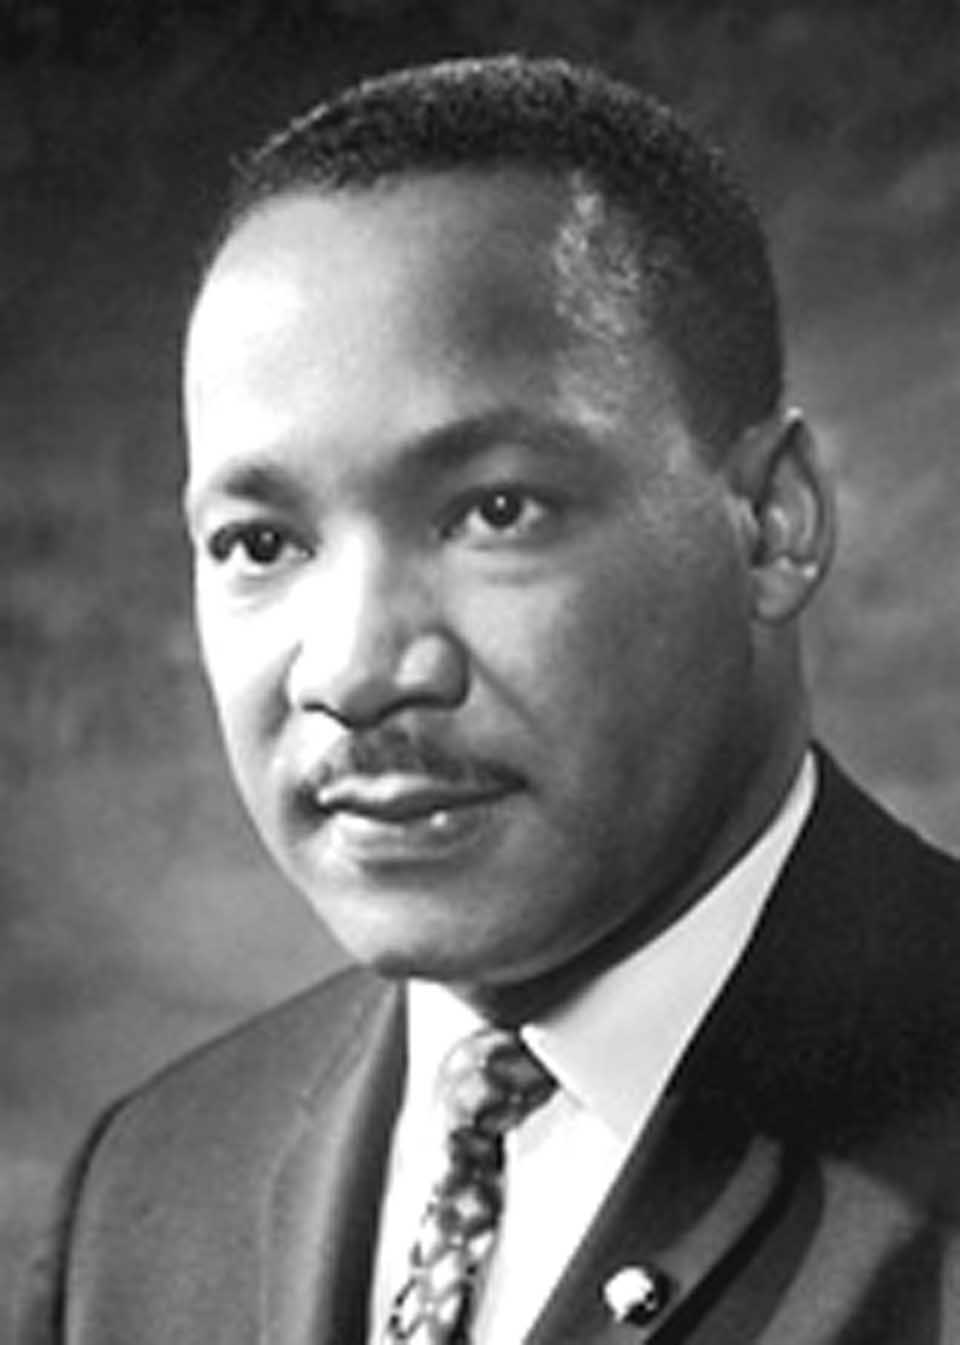 naacp offers scholarship for martin luther king jr essay dr martin luther king jr